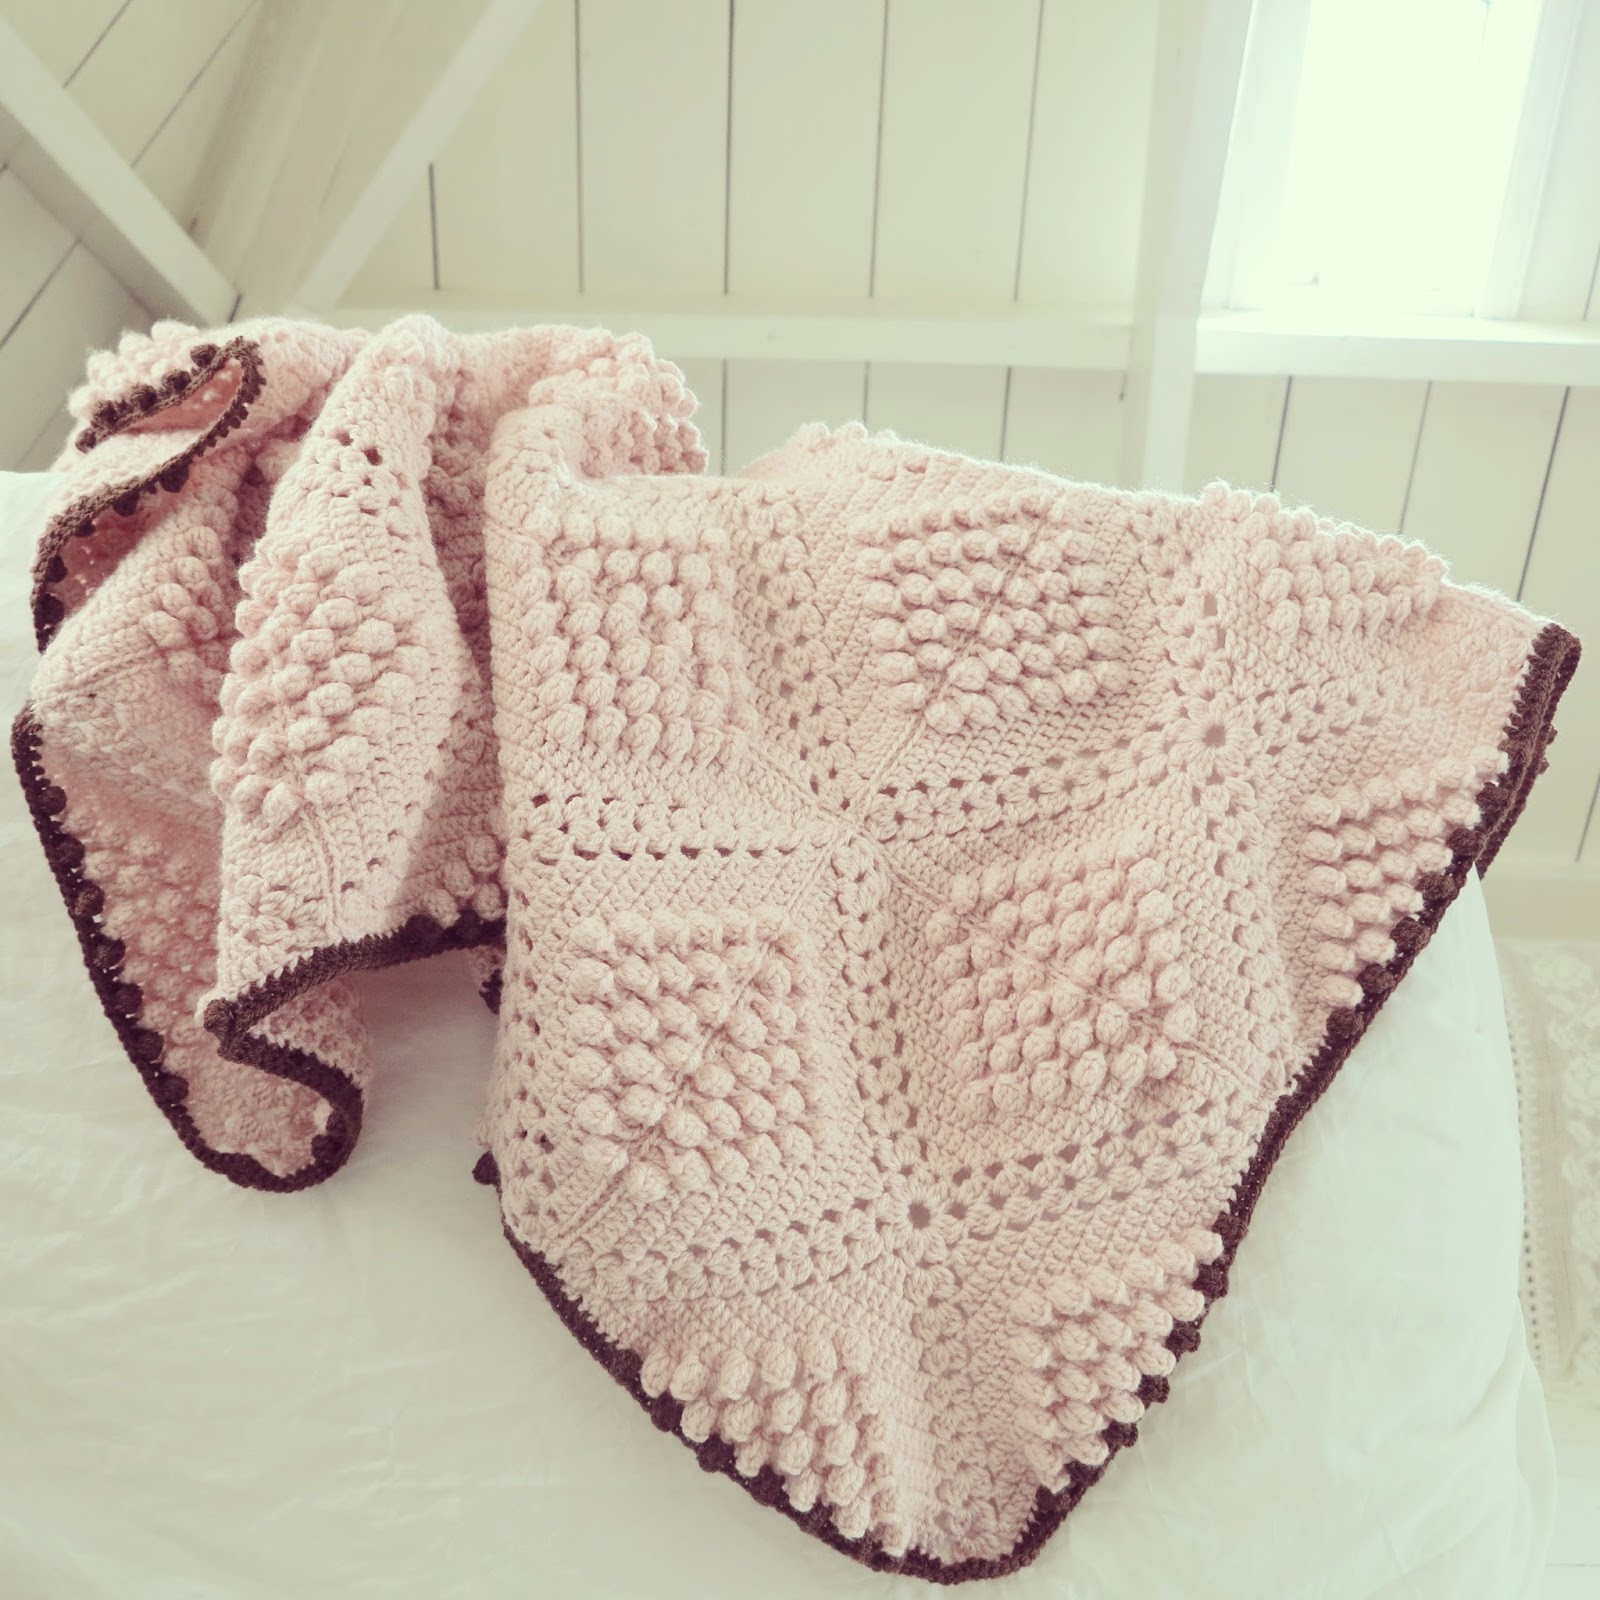 Fresh 10 Free Crochet Patterns & Tutorials for Baby Blankets Popcorn Stitch Crochet Patterns Of Best Of How to Crochet Lazy Popcorn Stitch No Removing Your Hook Popcorn Stitch Crochet Patterns